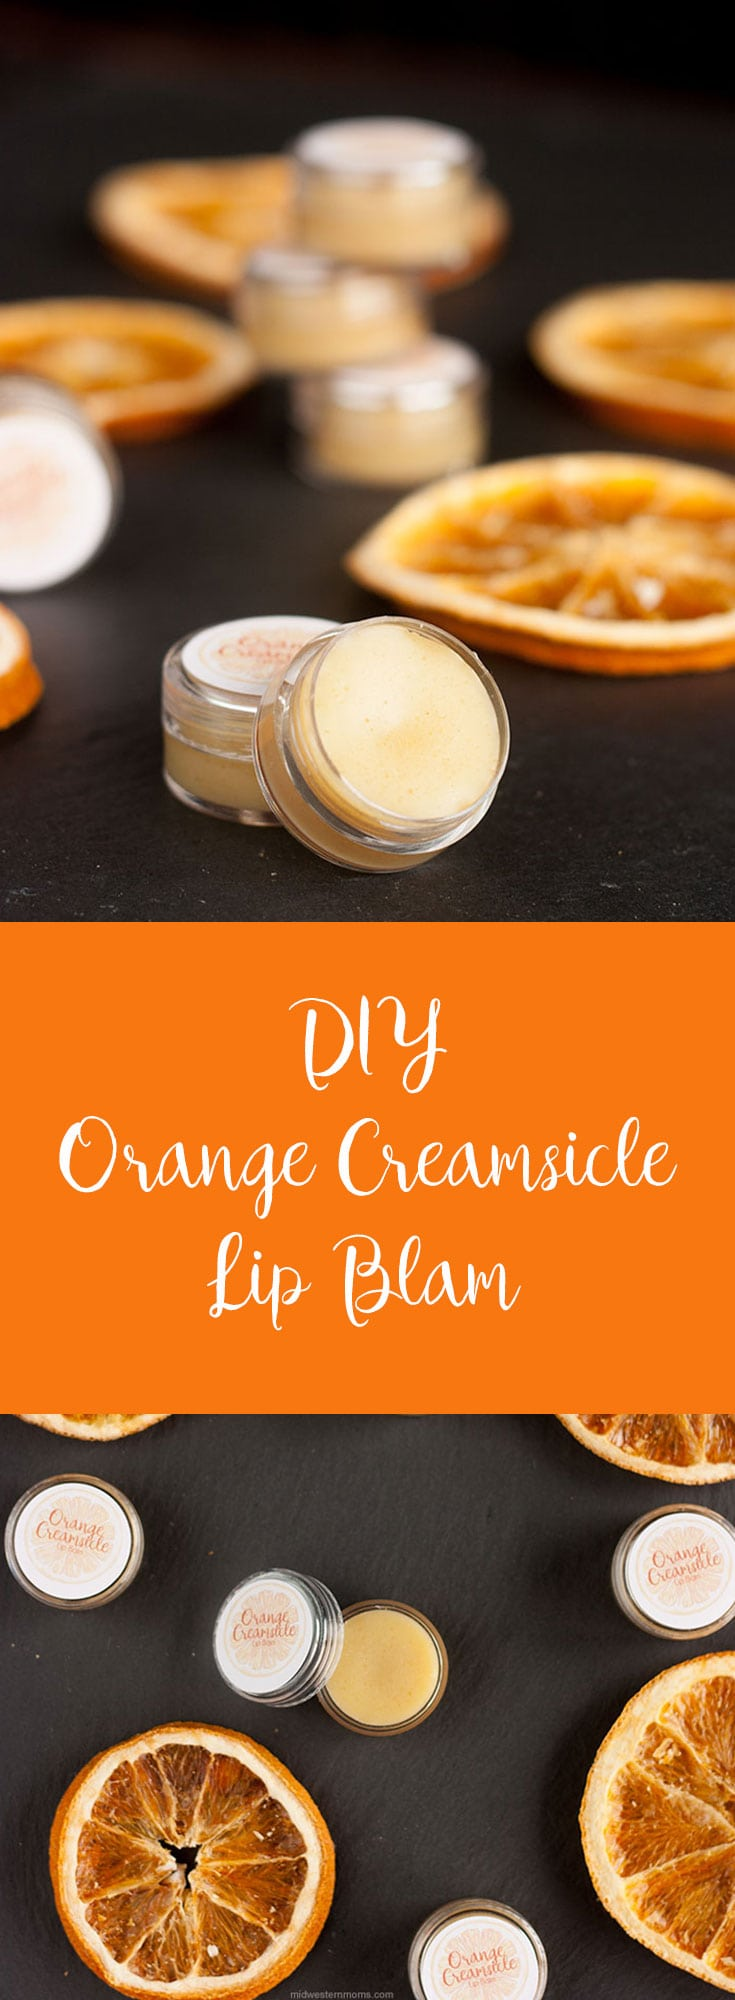 Easy to make Orange Creamsicle Lip Balm. Simple recipe to help soothe your chapped lips.